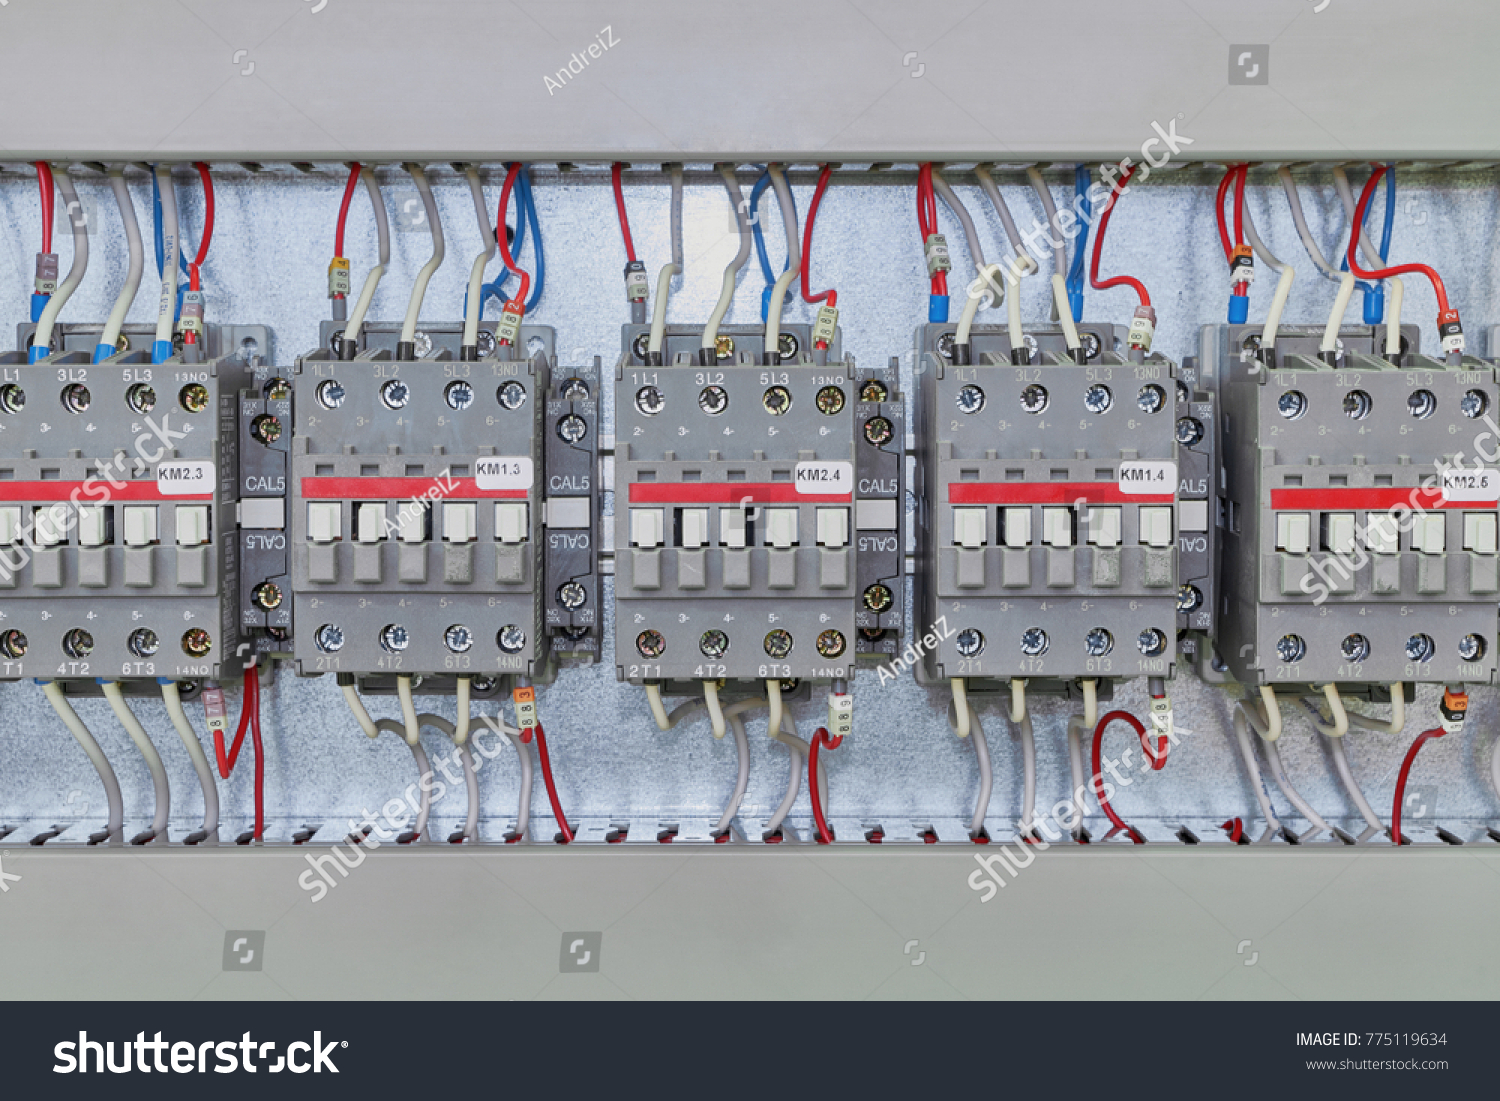 Several Electrical Contactor On Mounting Panel Stock Photo ... on side electrical panel, power electrical panel, brick electrical panel,